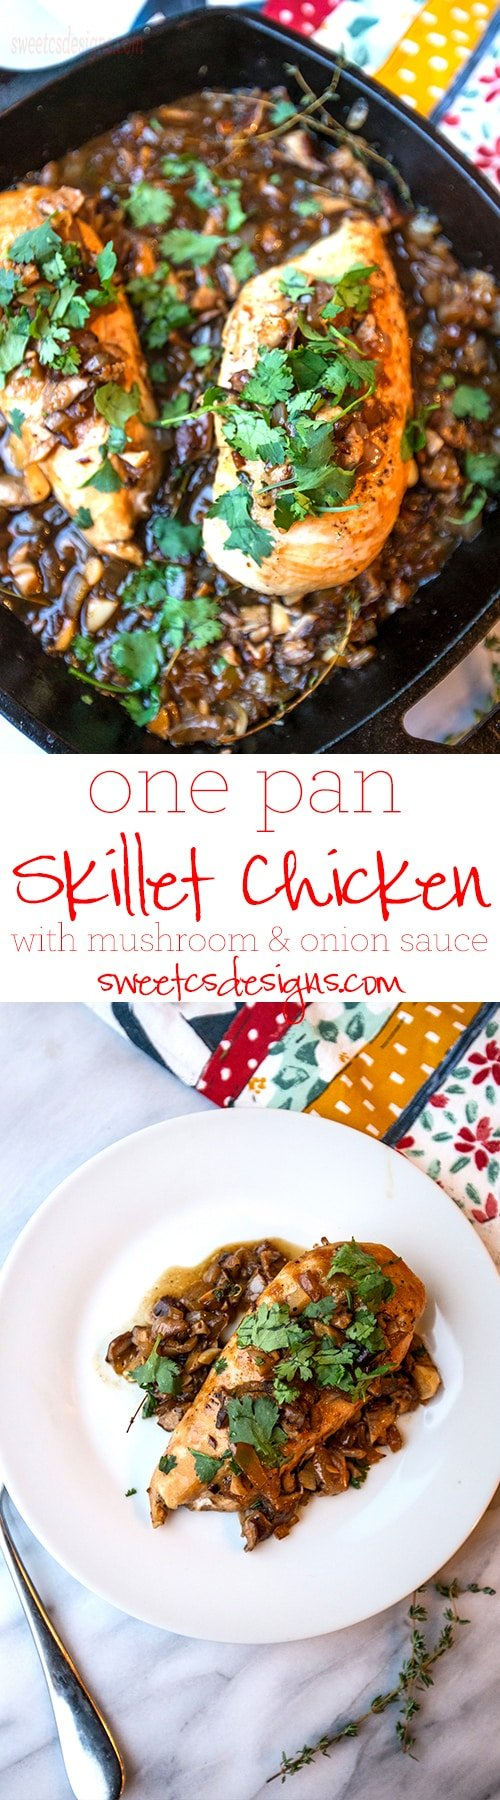 how to cook chicken breast skillet